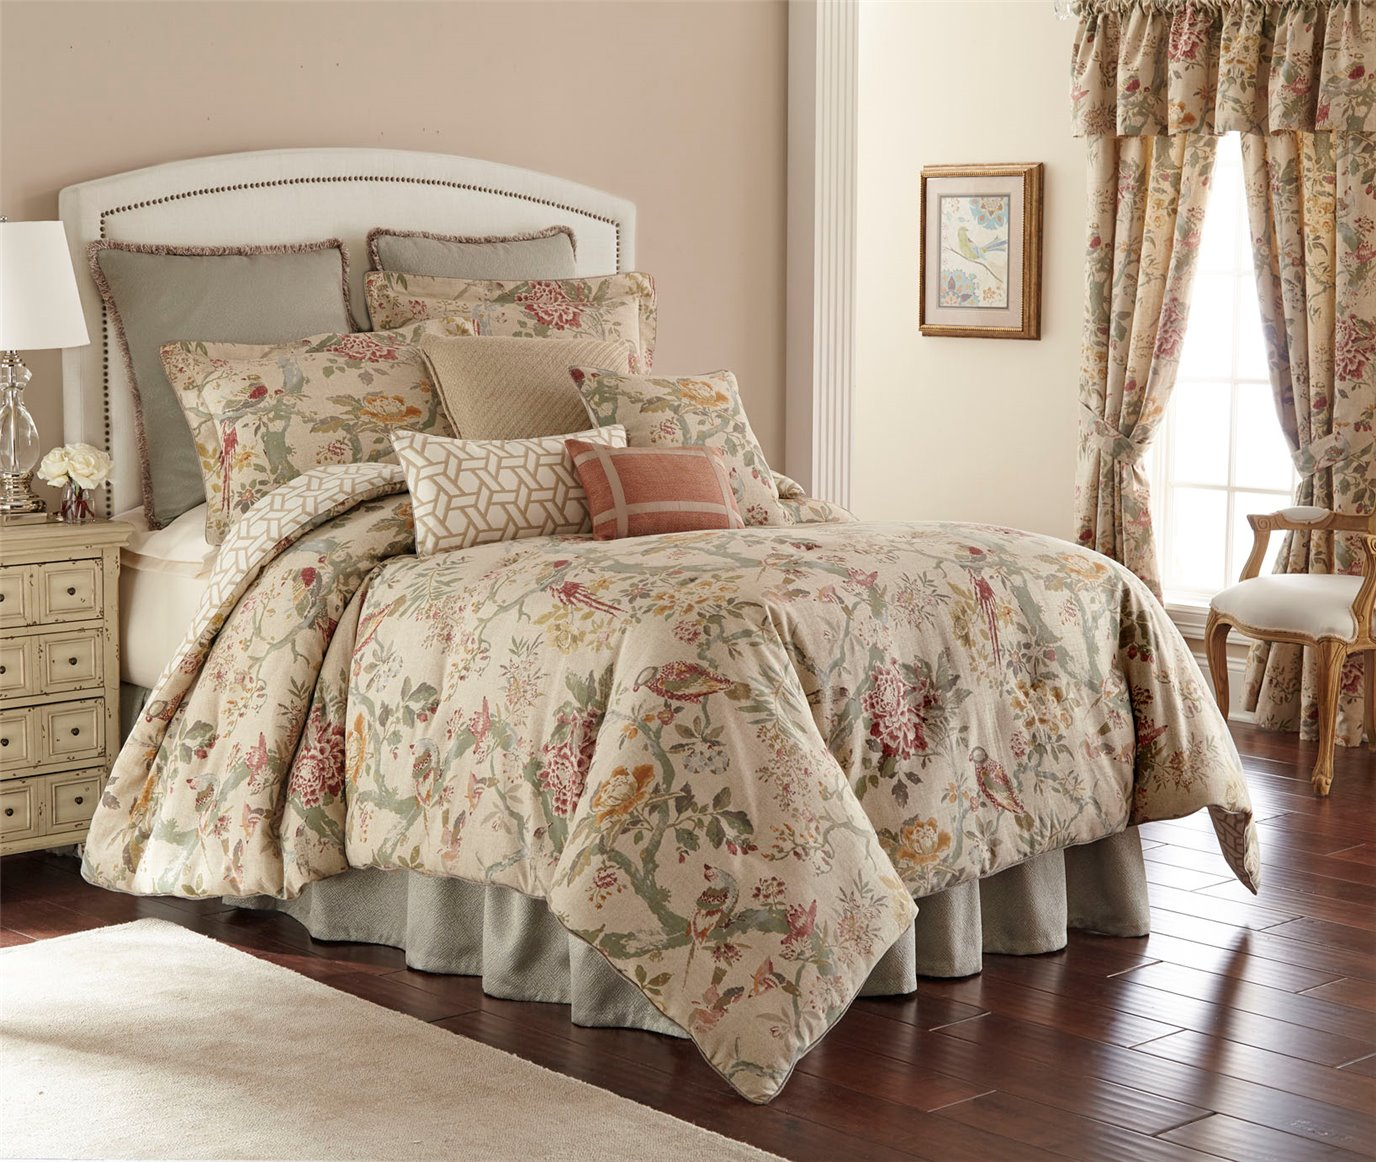 Biccari Floral 4 Piece King Comforter Set